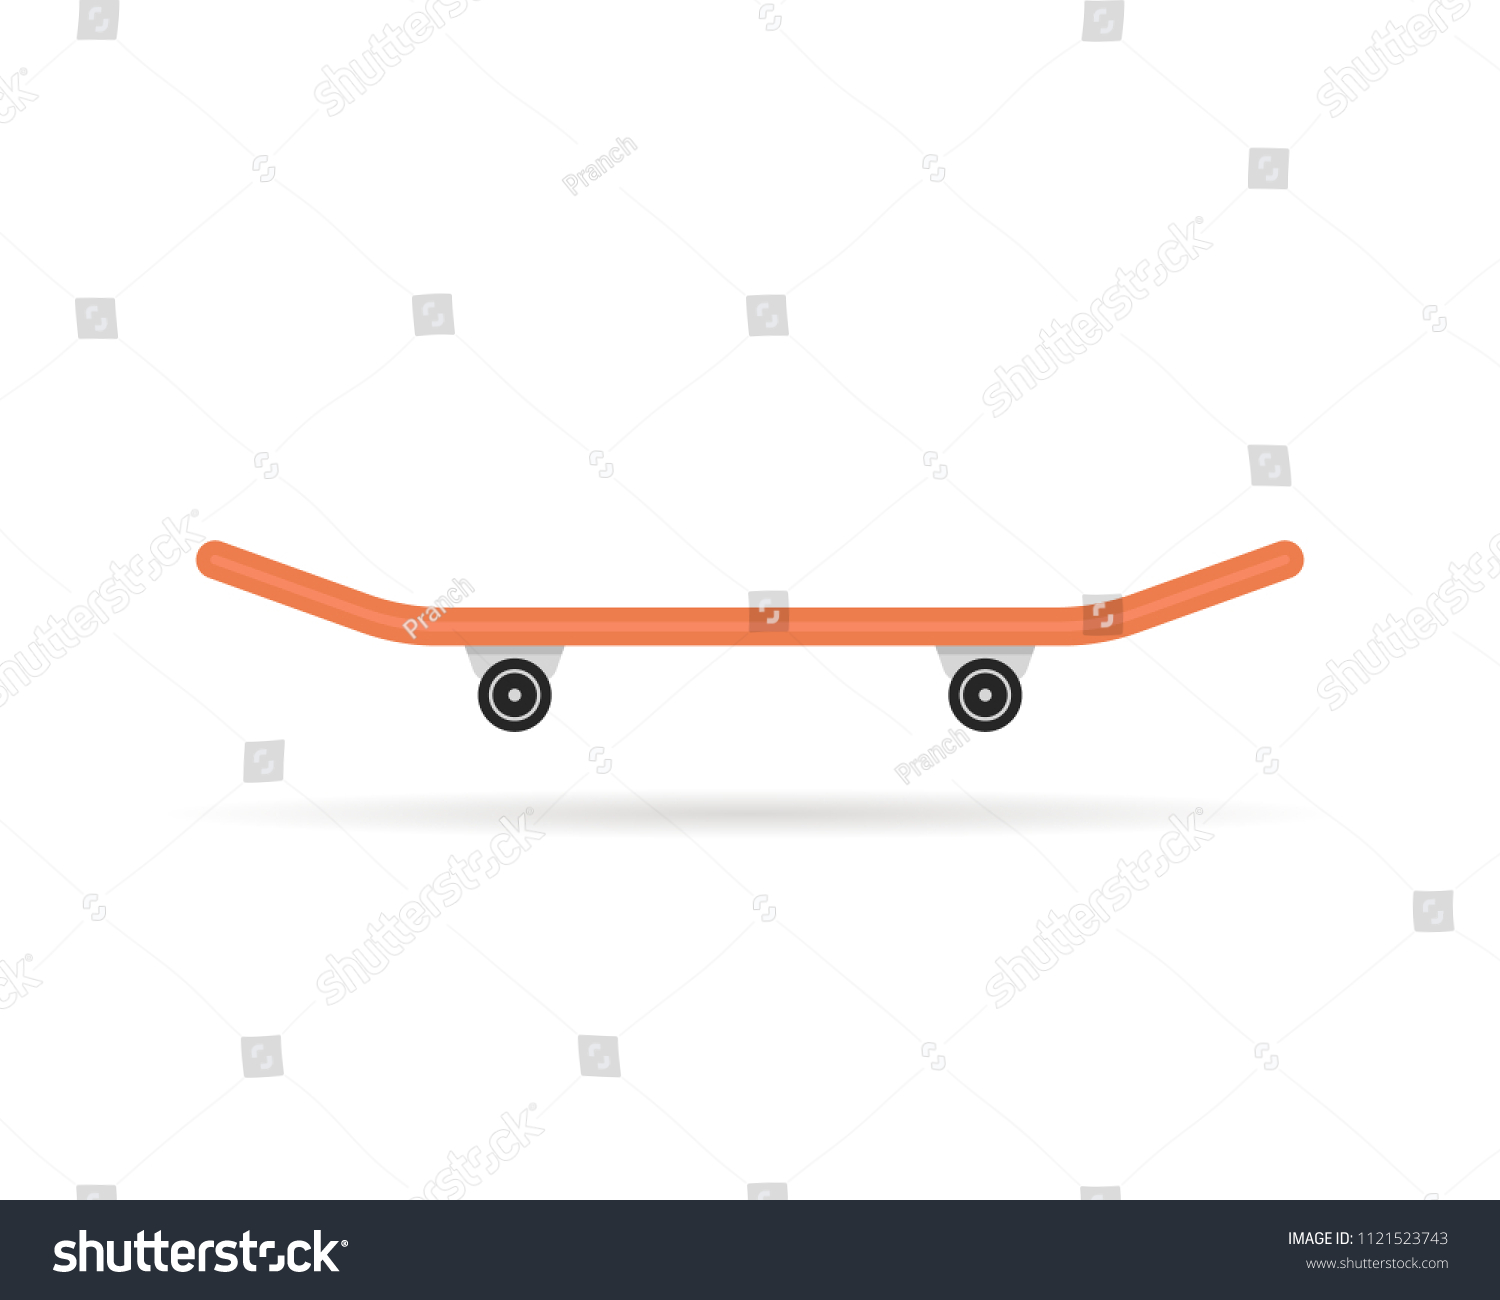 f739f8782a3d0 simple skateboard icon with shadow. cartoon flat style trend modern  logotype graphic art design isolated